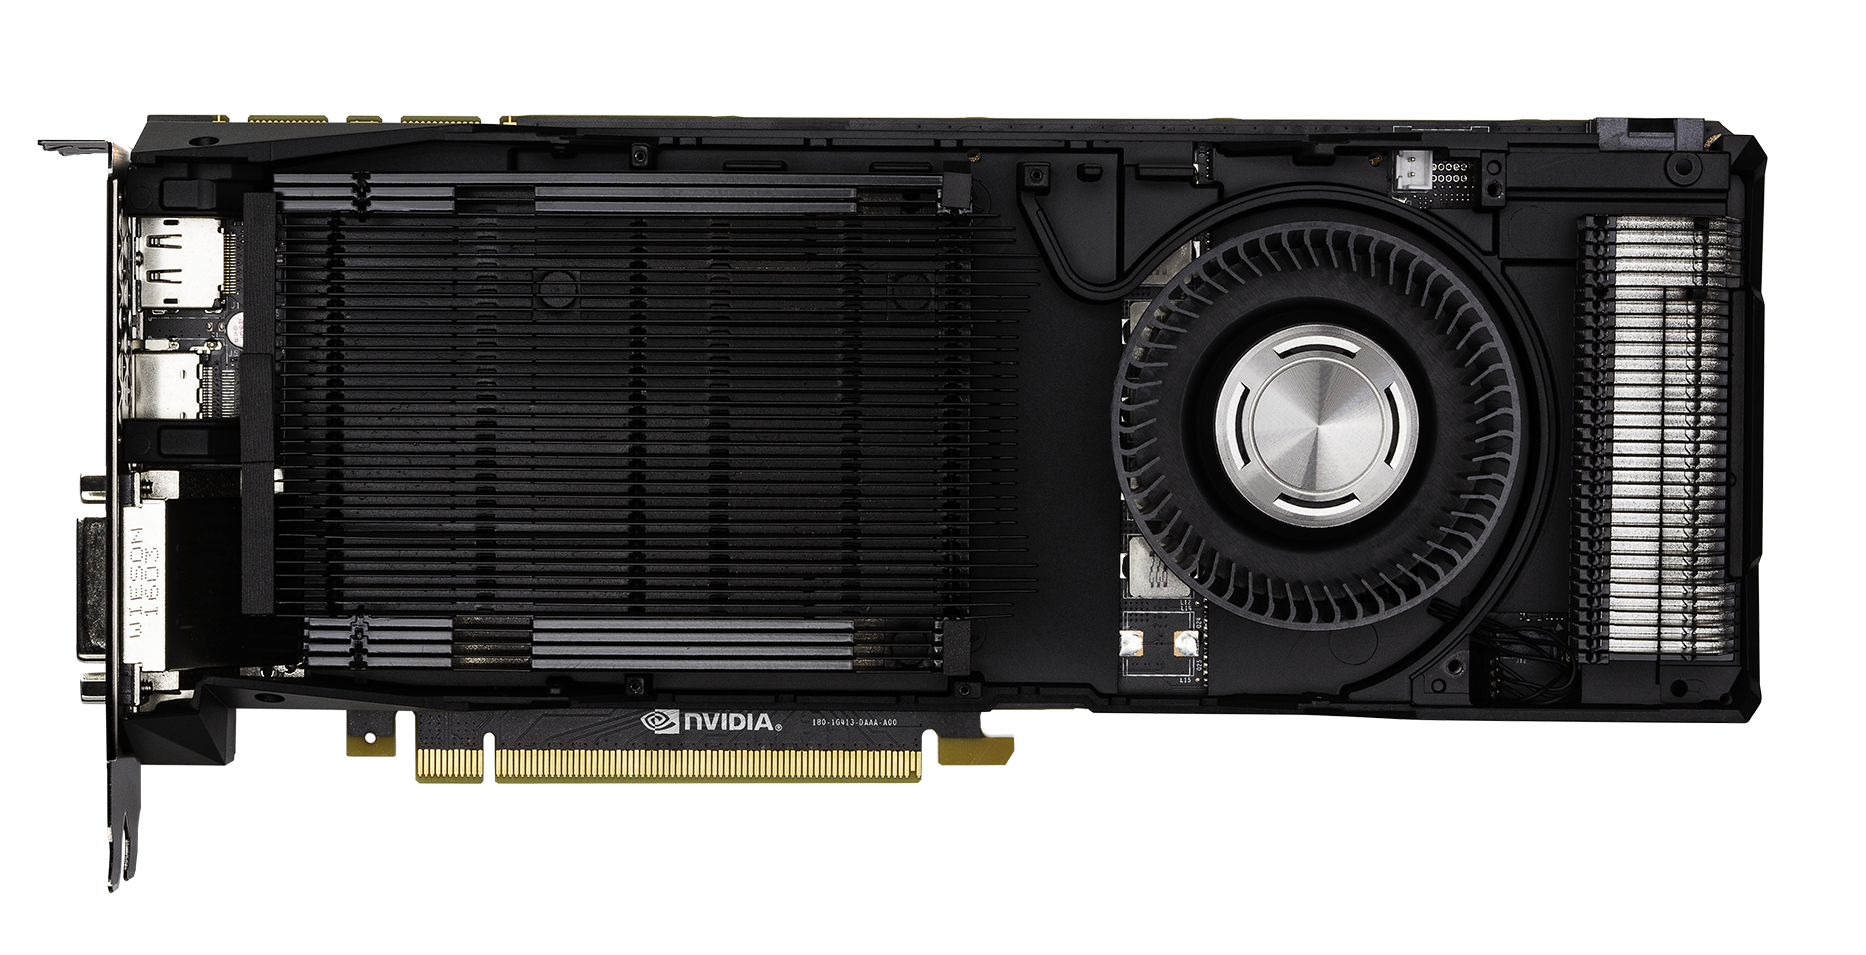 GeForce GTX 1080 Founders Edition: Premium Construction & Advanced Features | GeForce